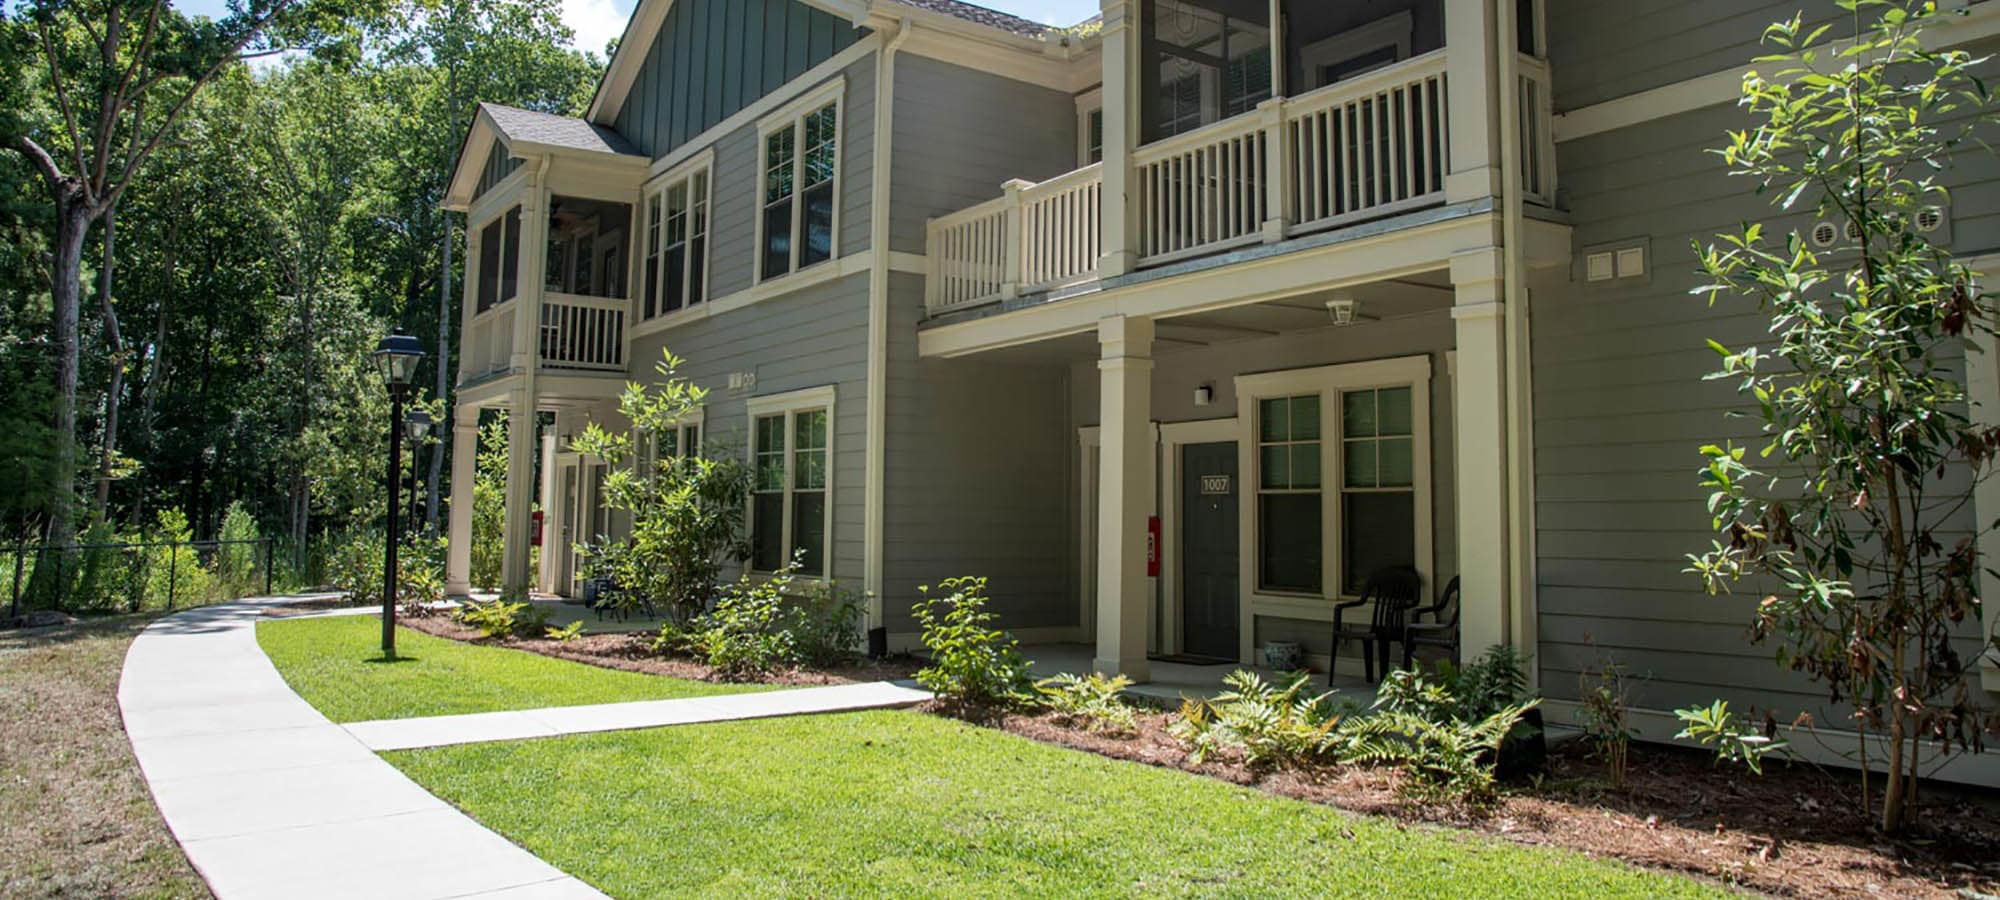 Apartments for rent in Lake Charles, Louisiana